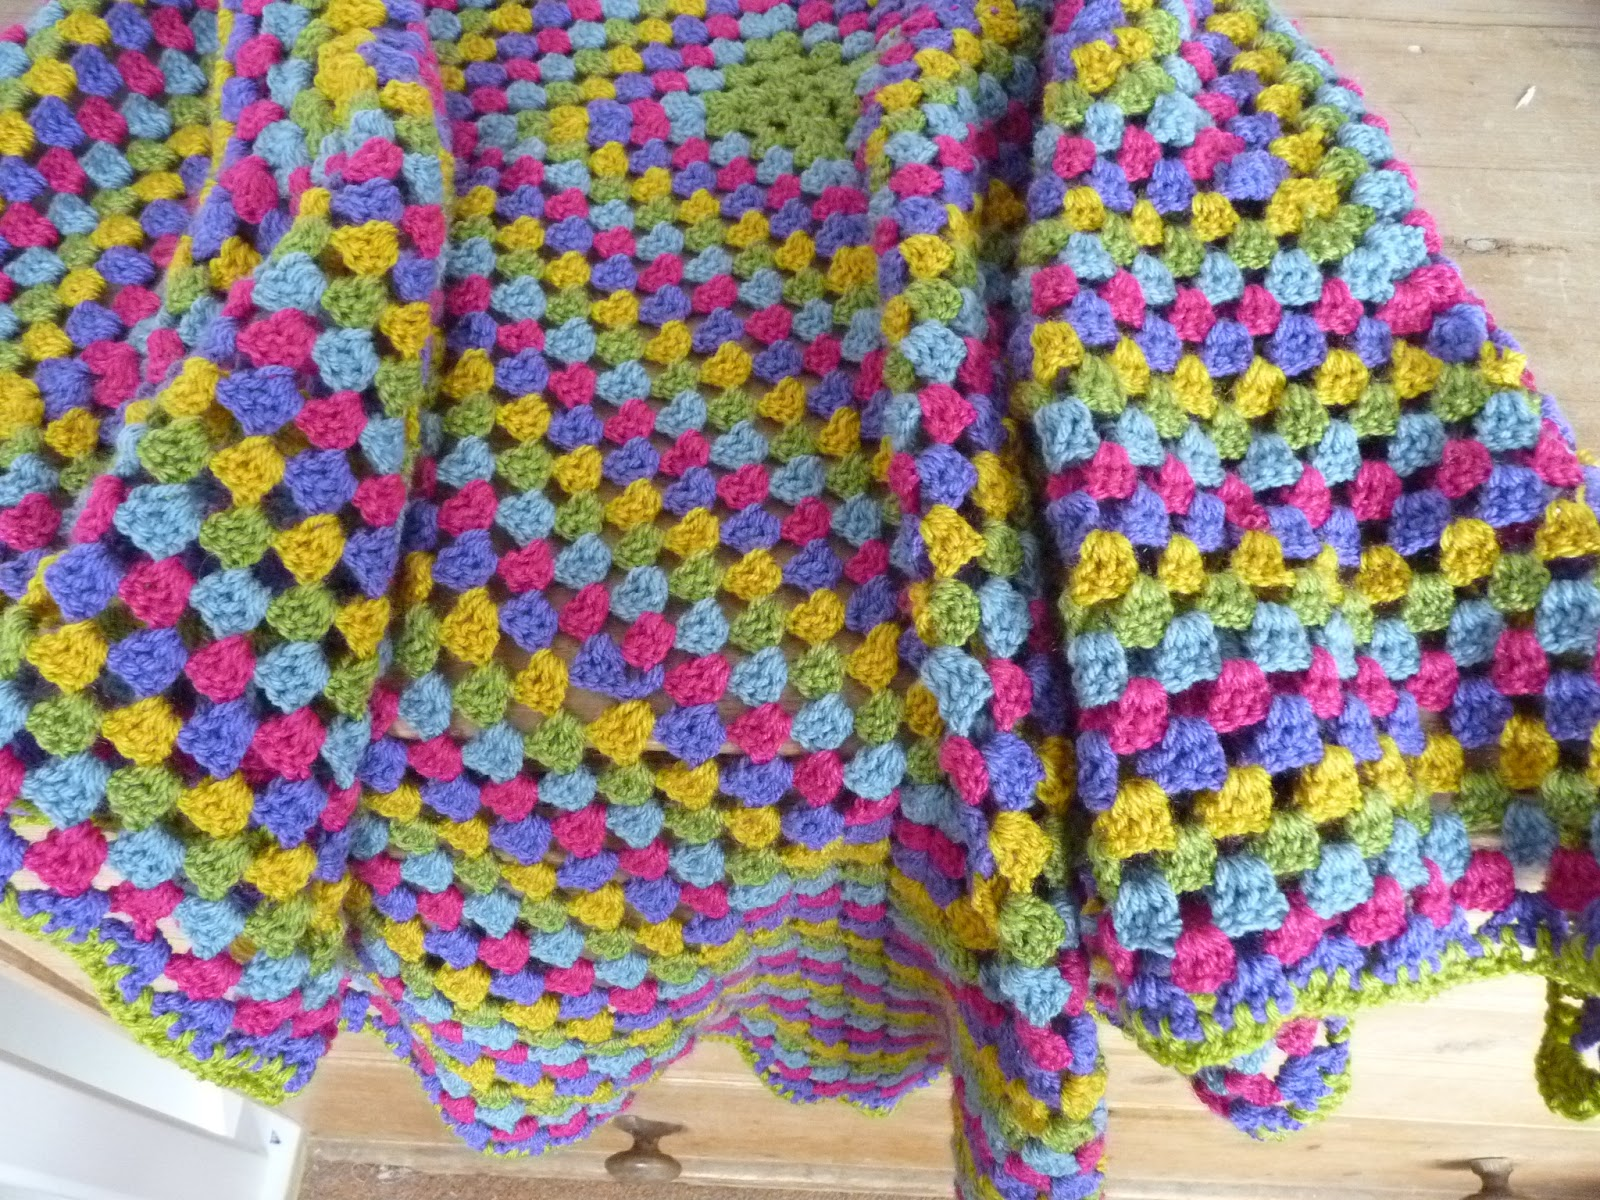 Crocheting Uses : fine linen and purple: crochet blanket